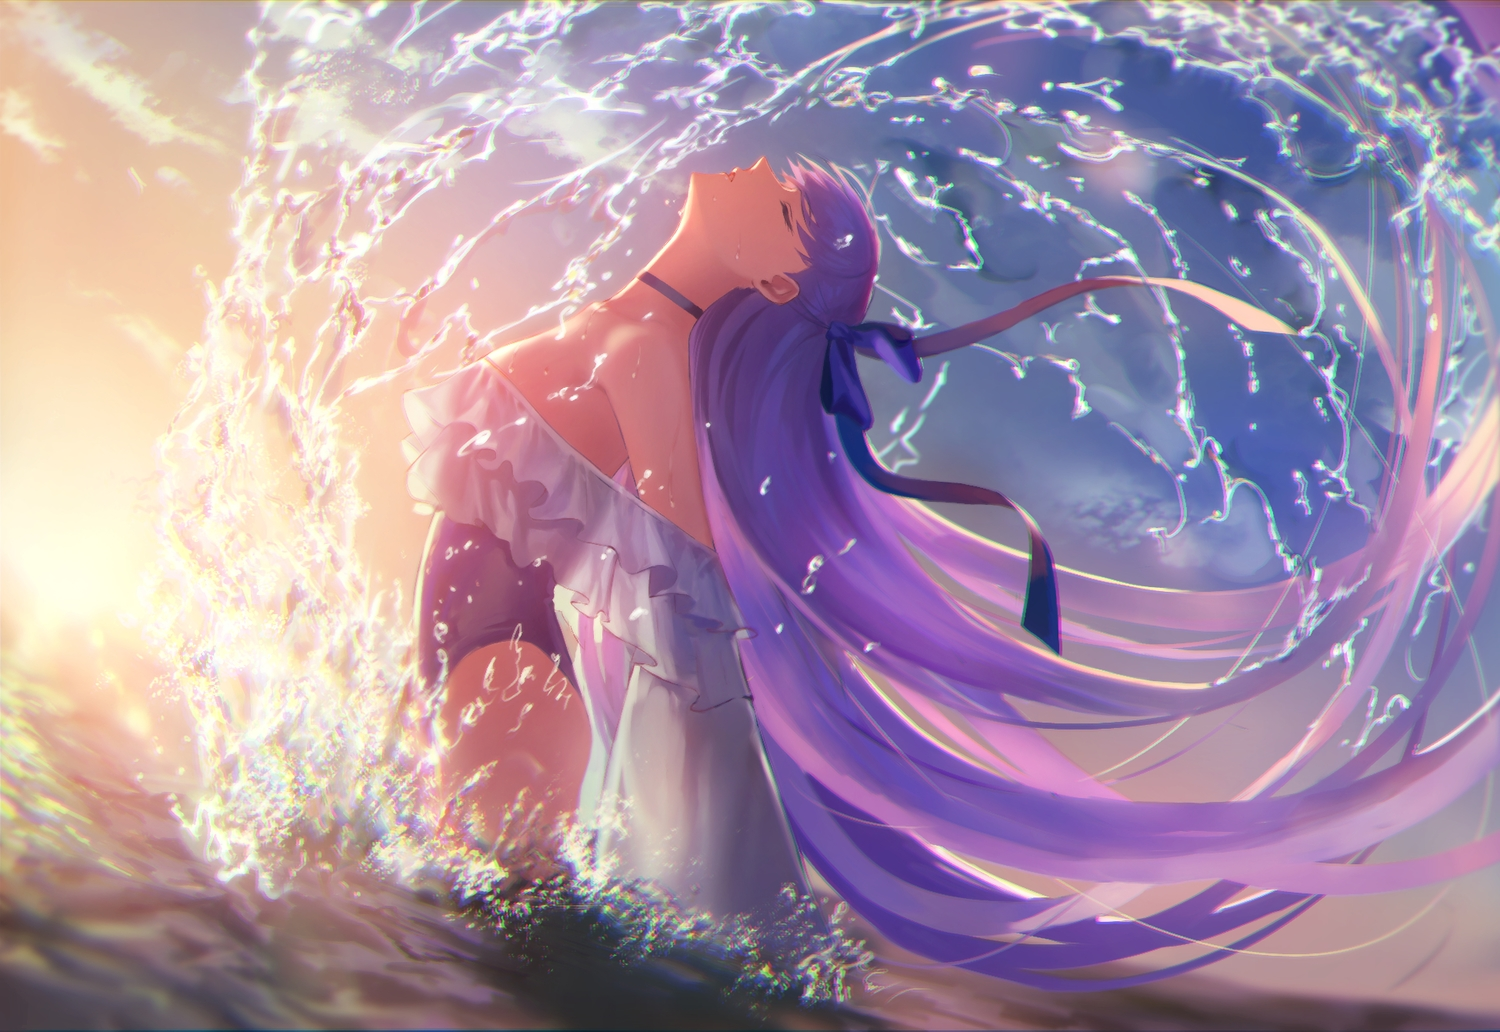 bow choker clouds fate/grand_order fate_(series) long_hair meltryllis purple_hair ribbons sky sunset swimsuit water zonotaida